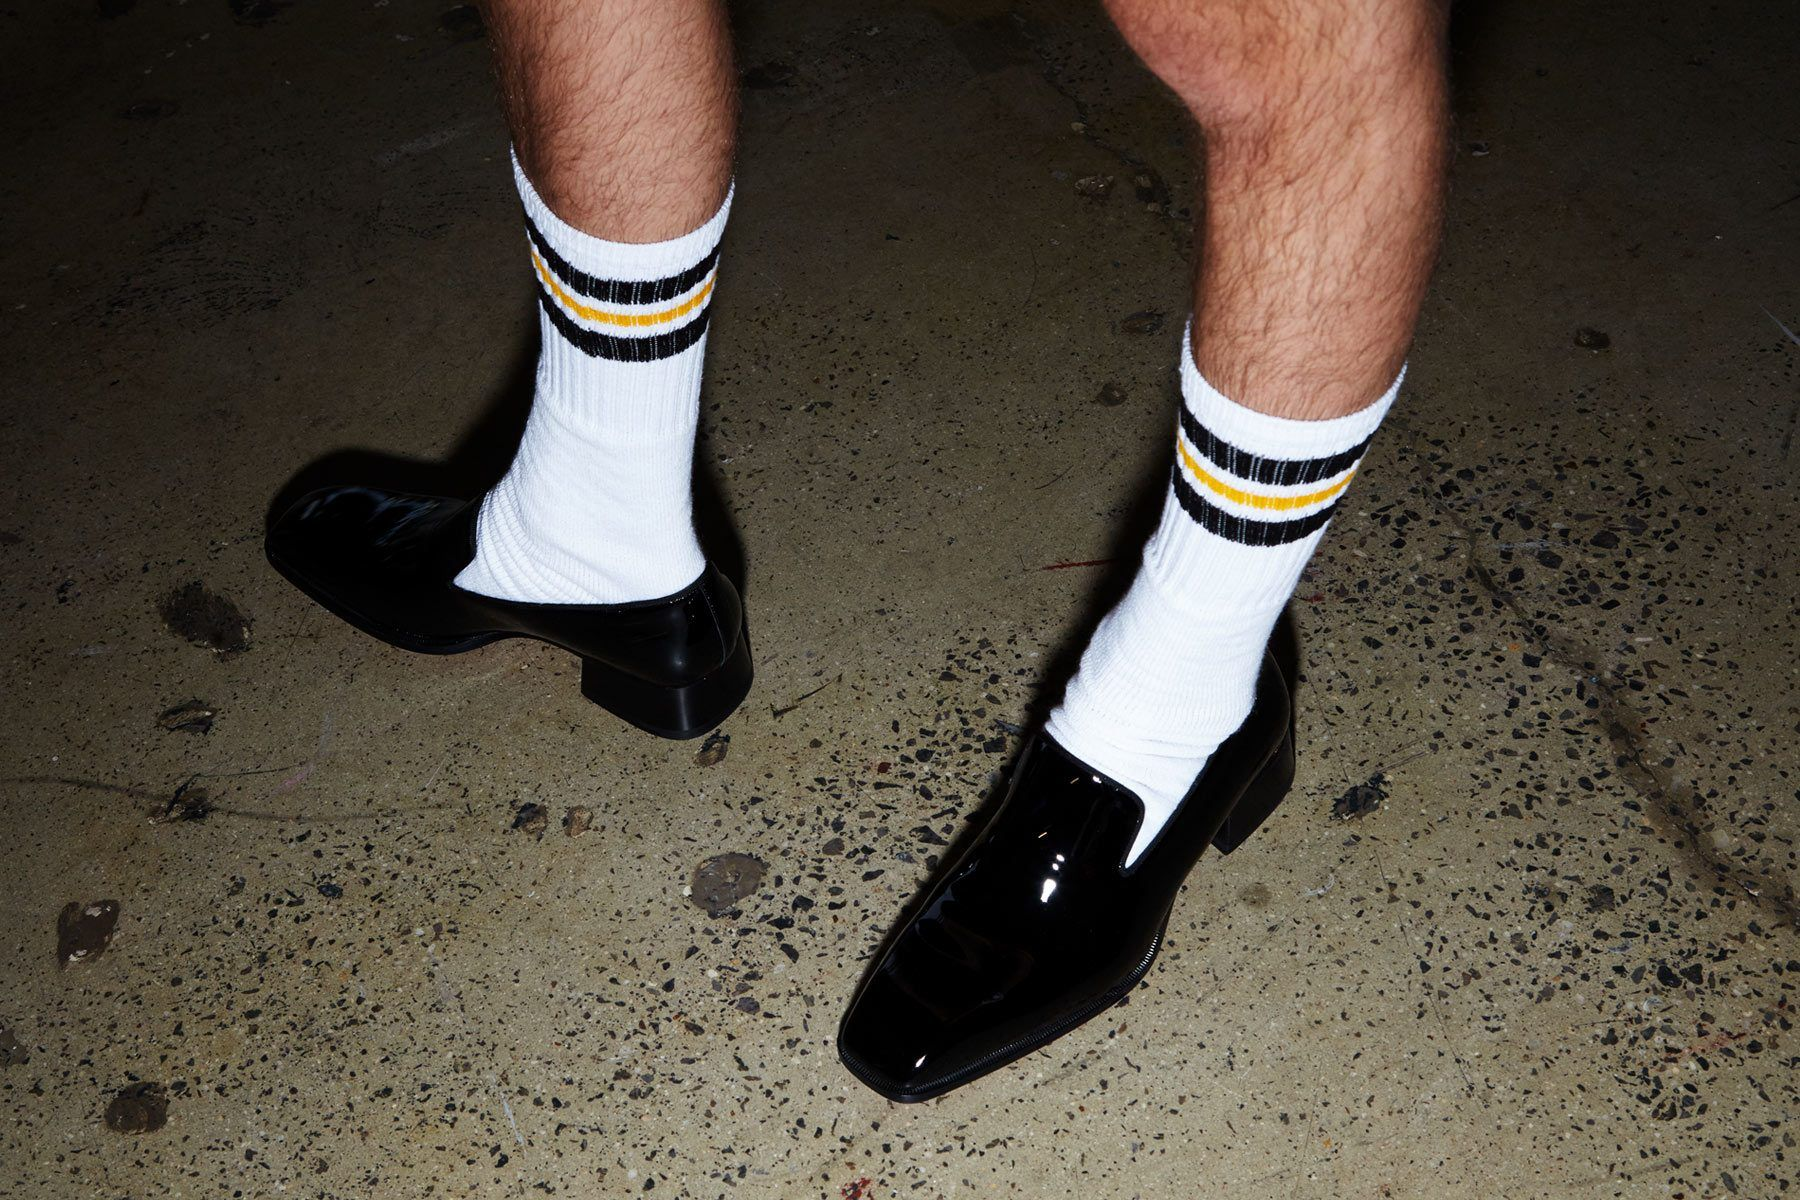 Tube socks and Christian Louboutin dress shoes backstage at David Hart for Spring/Summer 2019. Photography by Alexander Thompson for Ponyboy magazine.